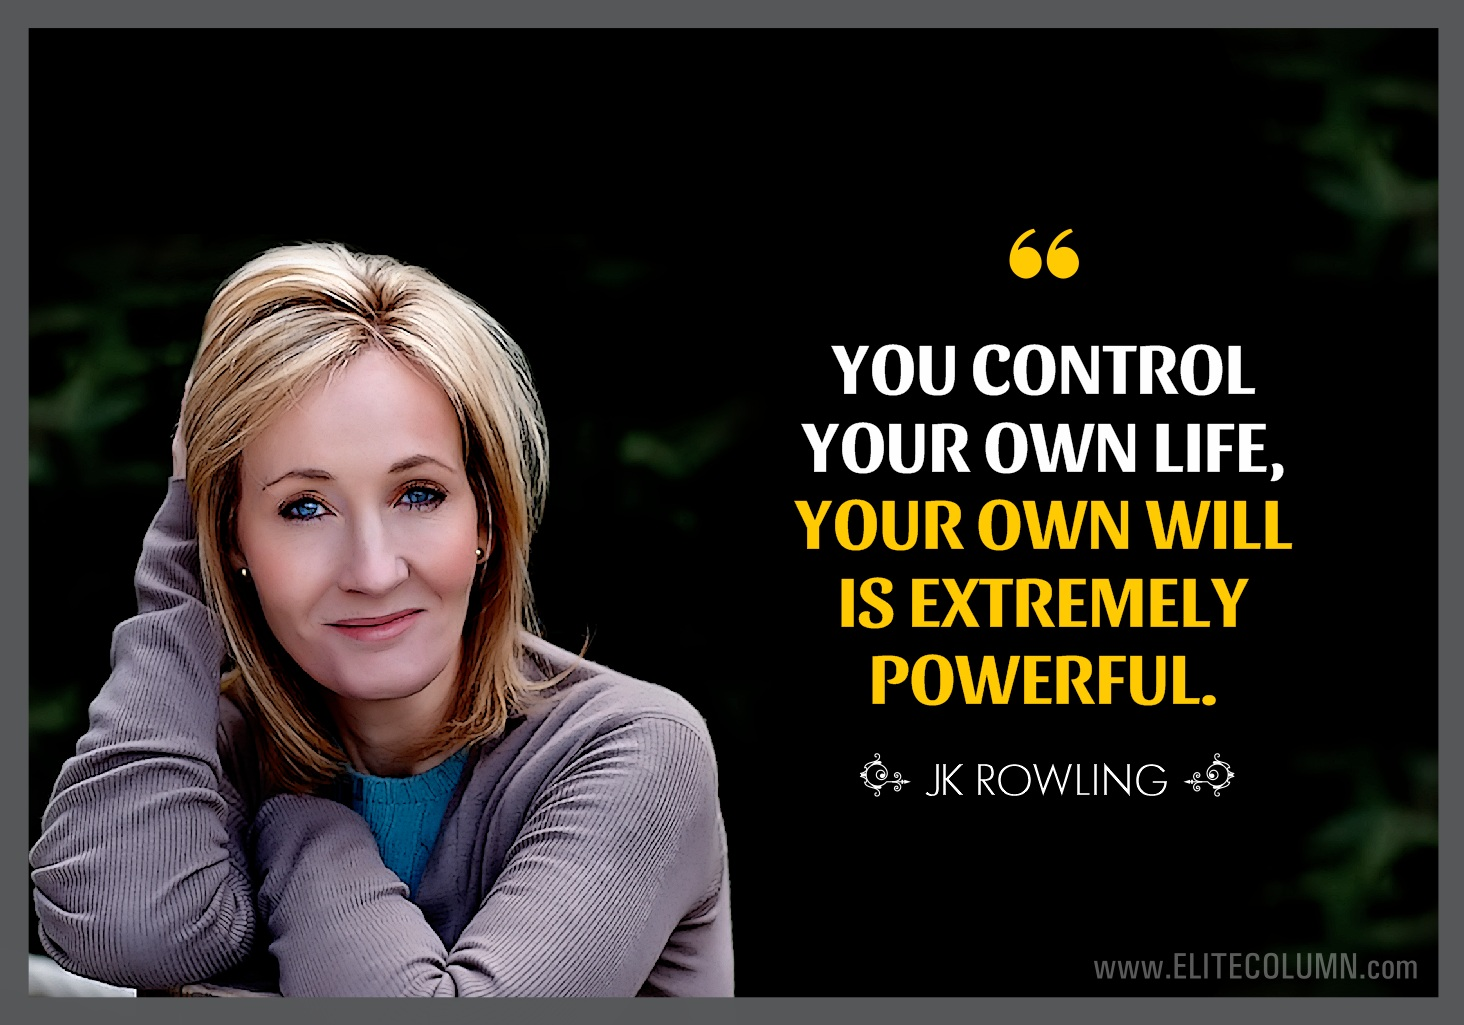 JK Rowling Quotes (2)